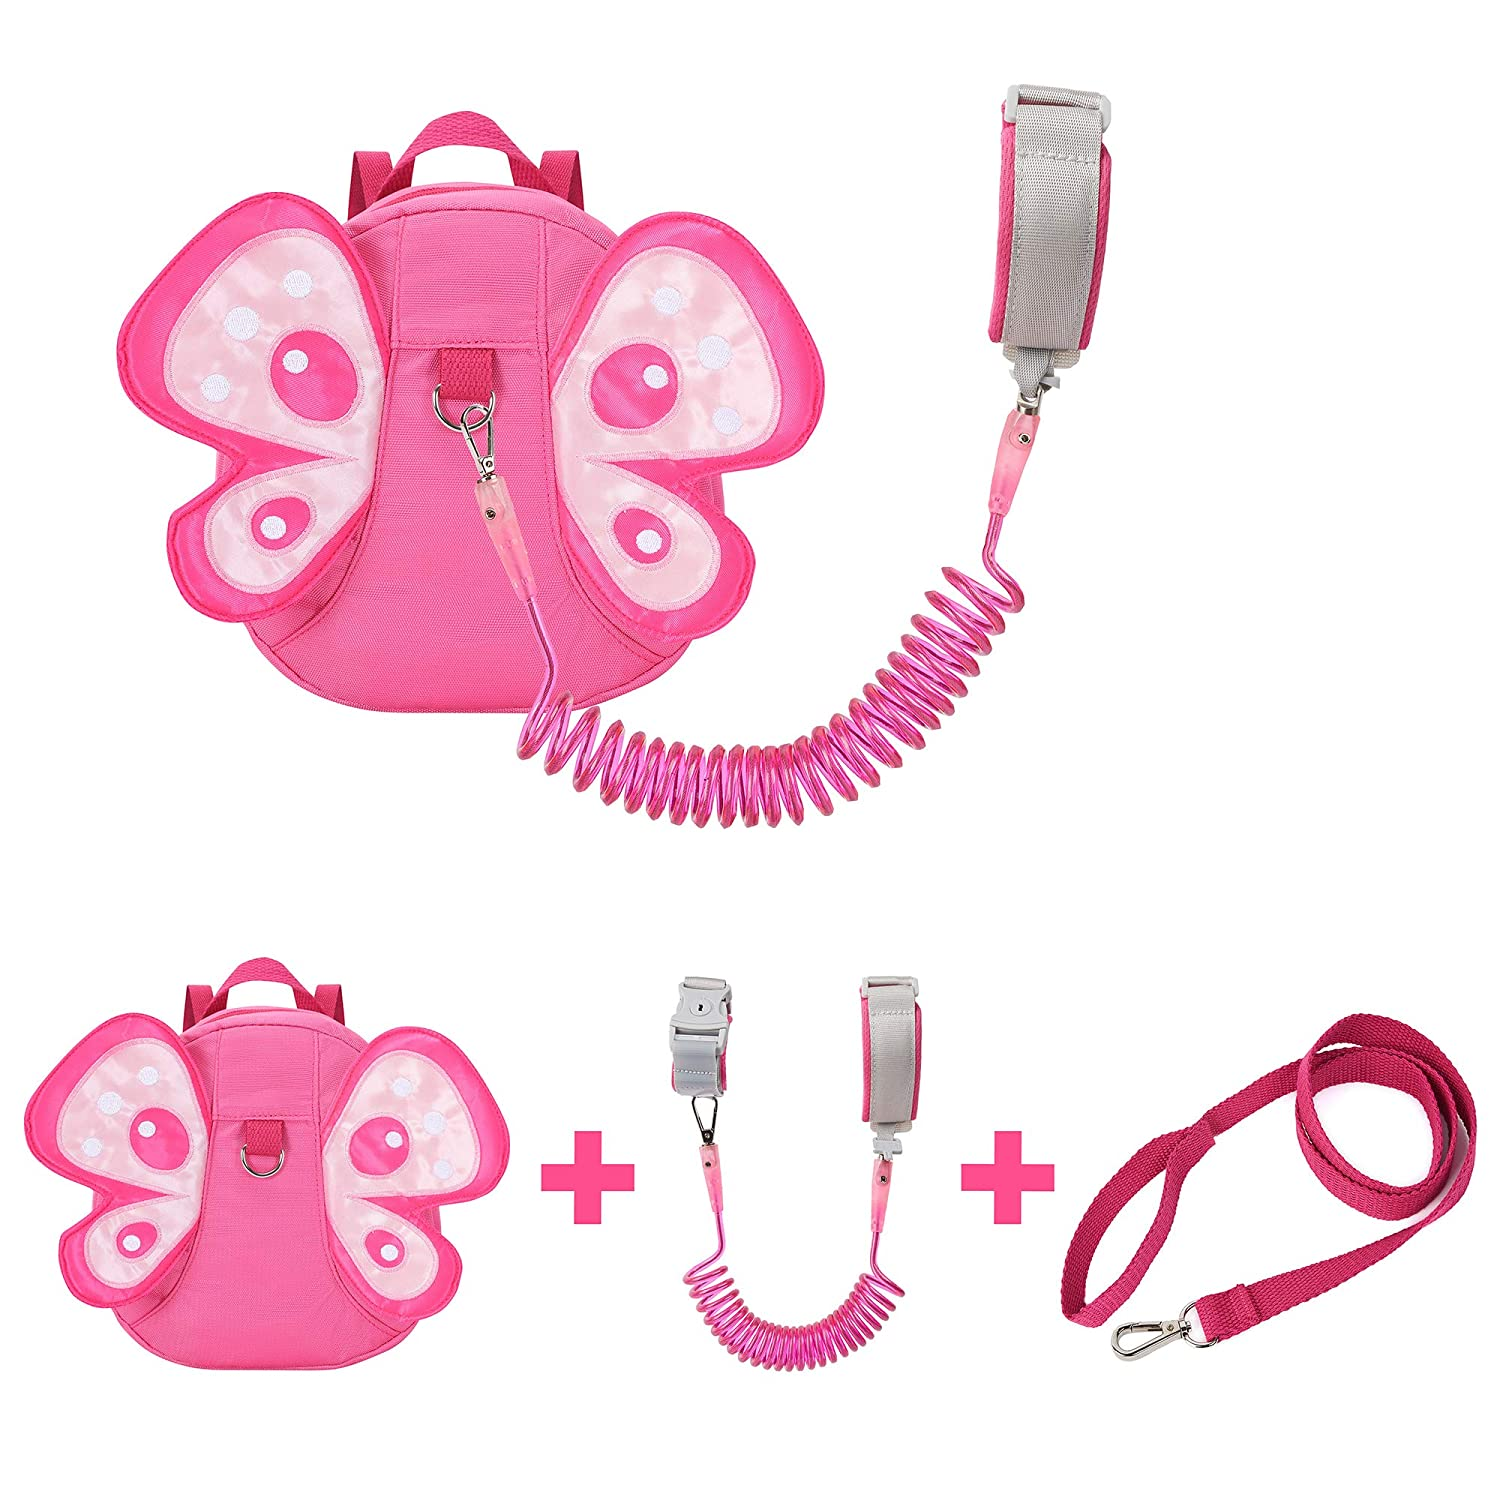 EPLAZA Toddler Leashes Butterfly-Like Backpacks with Anti Lost Wrist Link Wristband for 1.5 to 3 Years Kids Girls Boys Safety (Butterfly Rose)